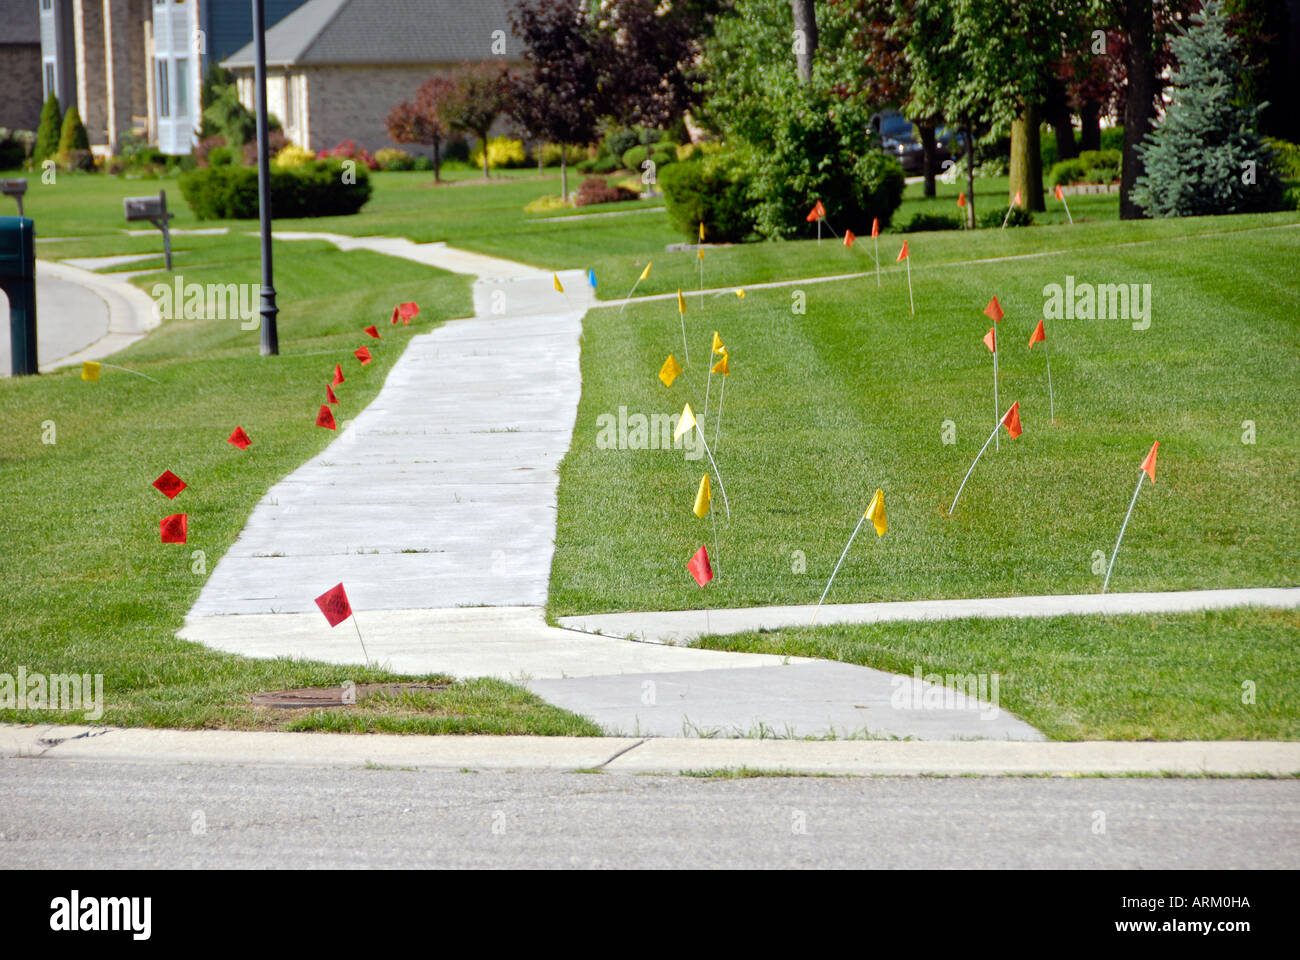 Flags Put On Residential Lawn By Miss Dig Identifies Hazardous Areas Stock Photo Alamy Click here for more information. https www alamy com flags put on residential lawn by miss dig identifies hazardous areas image9189401 html